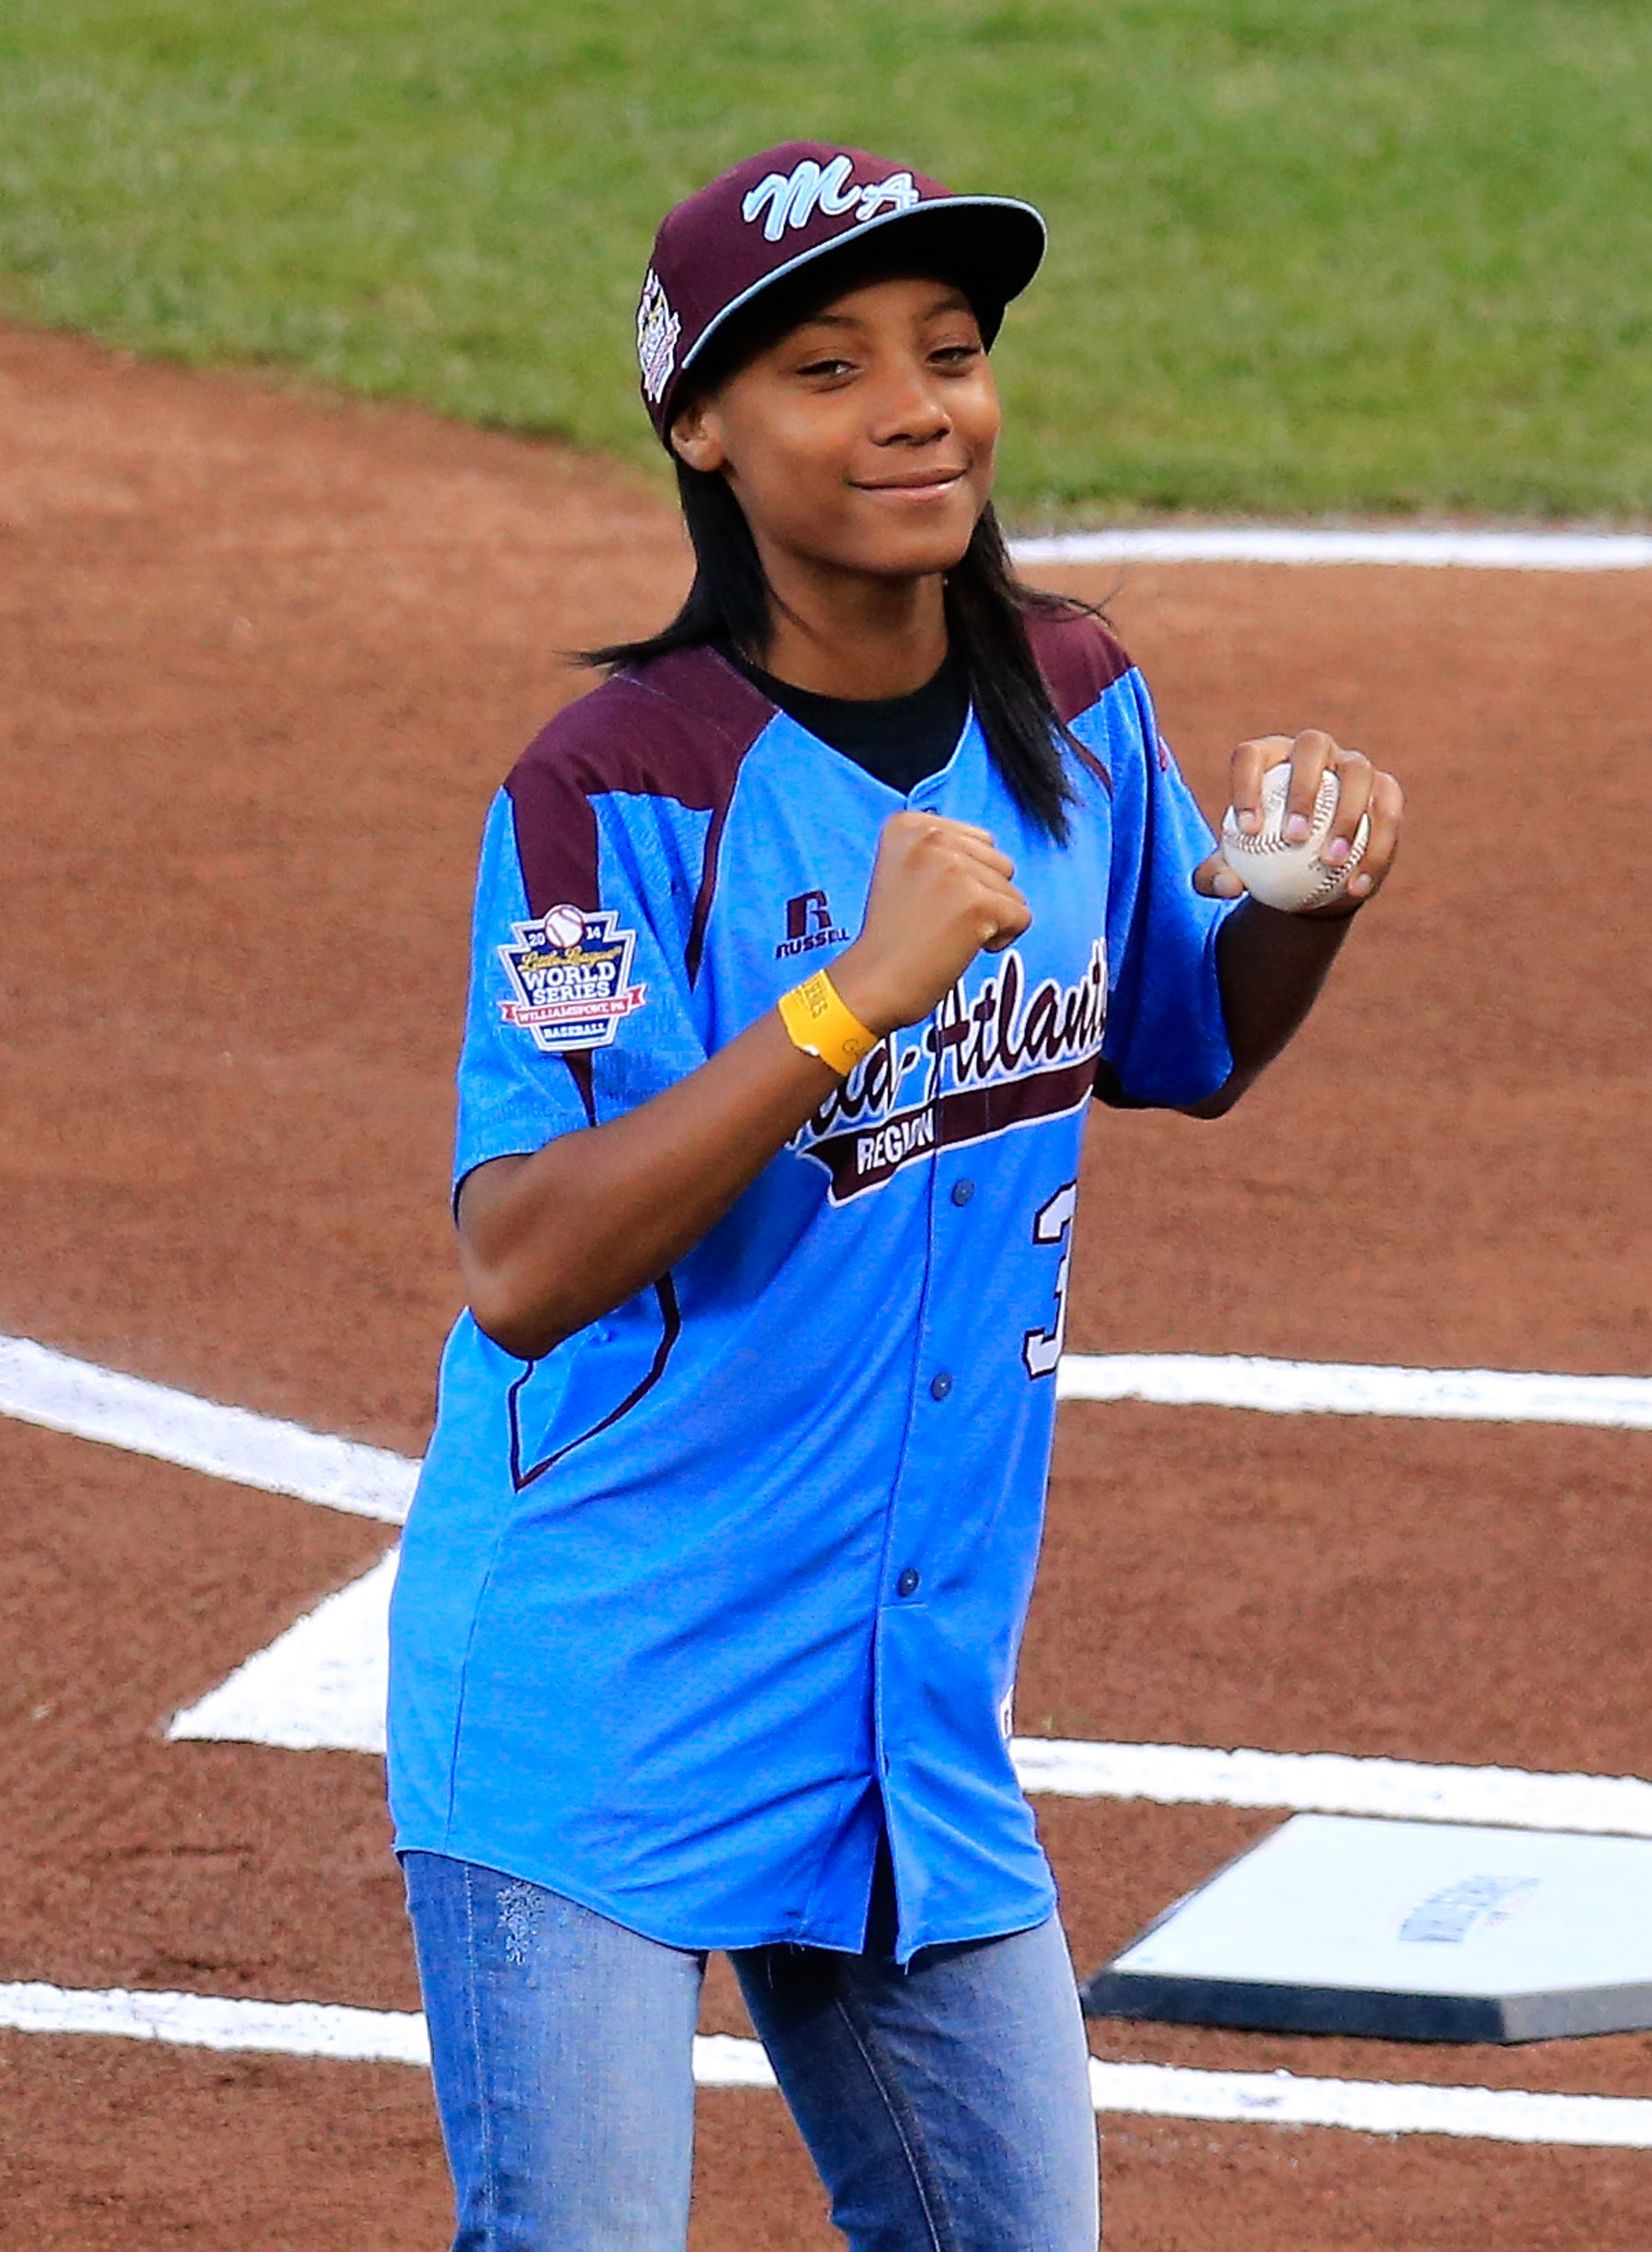 Mo'ne Davis throws out first pitch before Game 4 of World Series